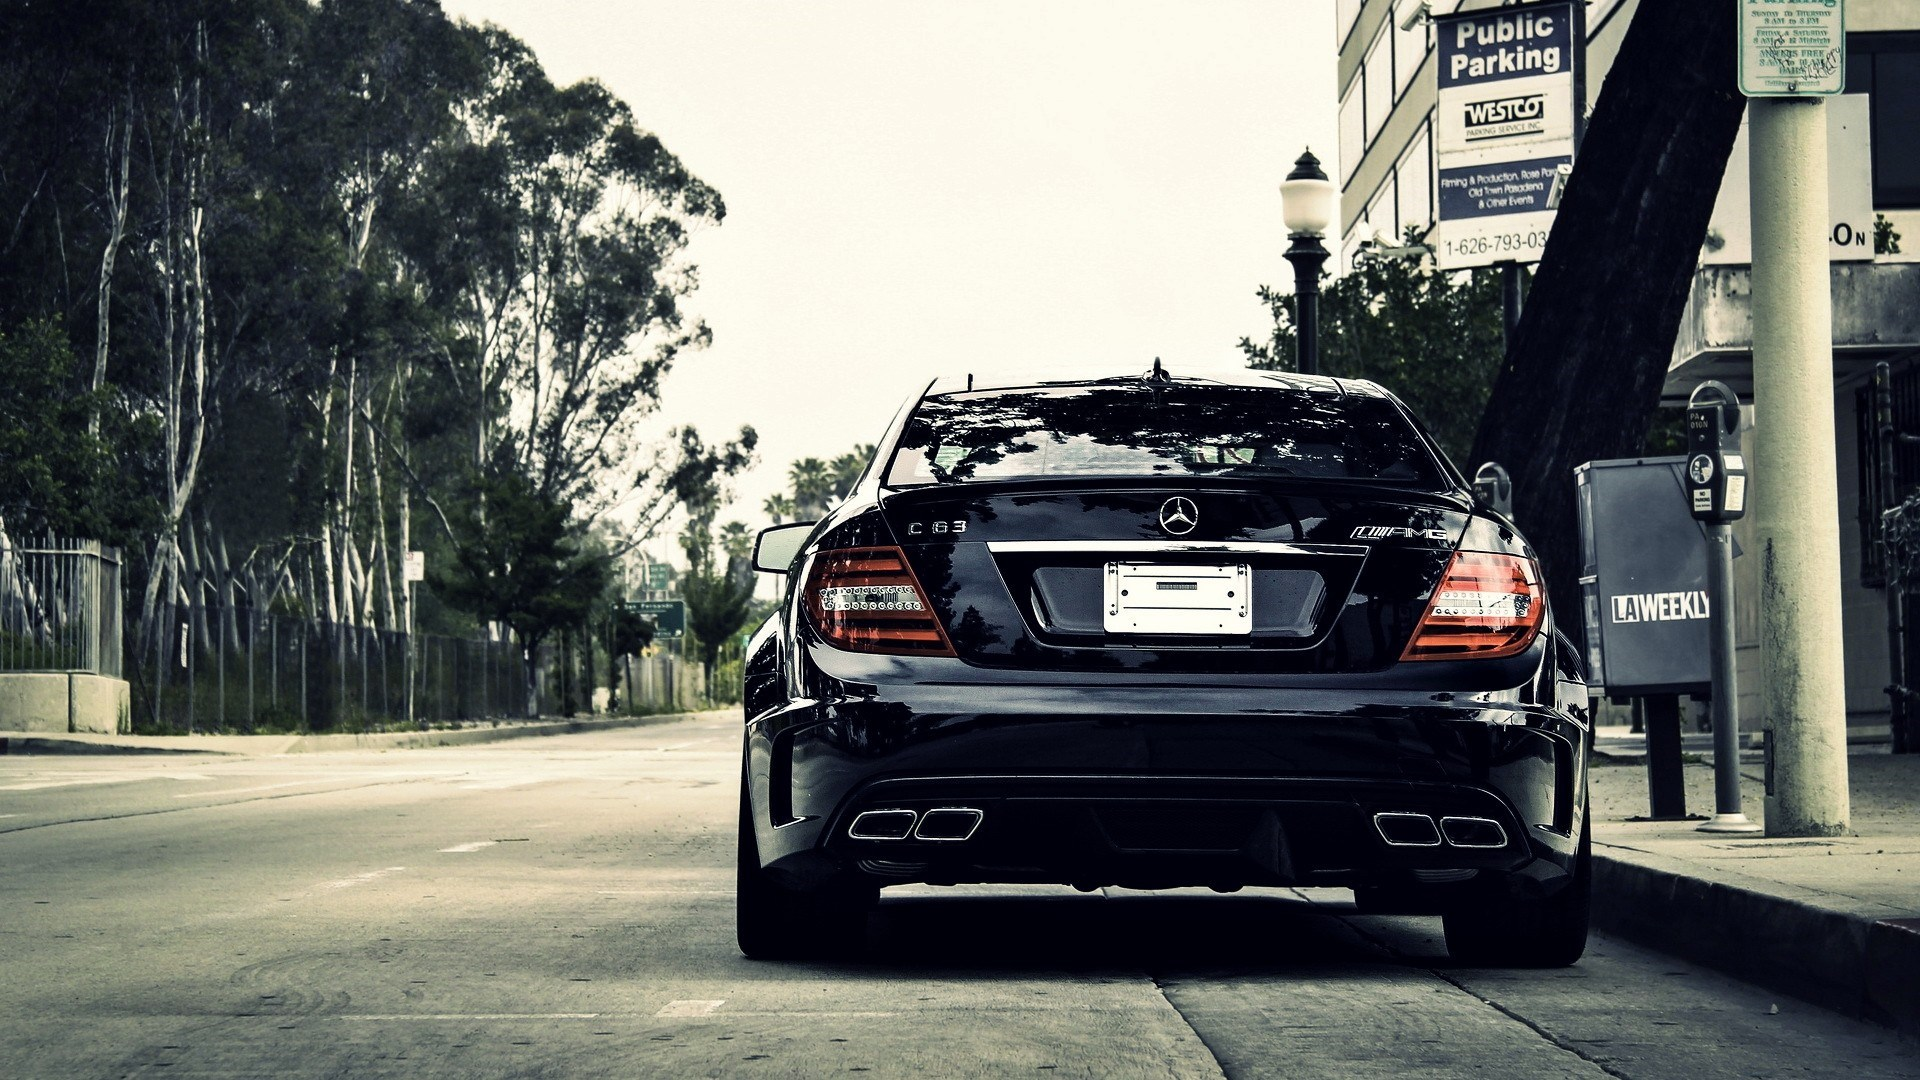 Mercedes-Benz C63 AMG Street City